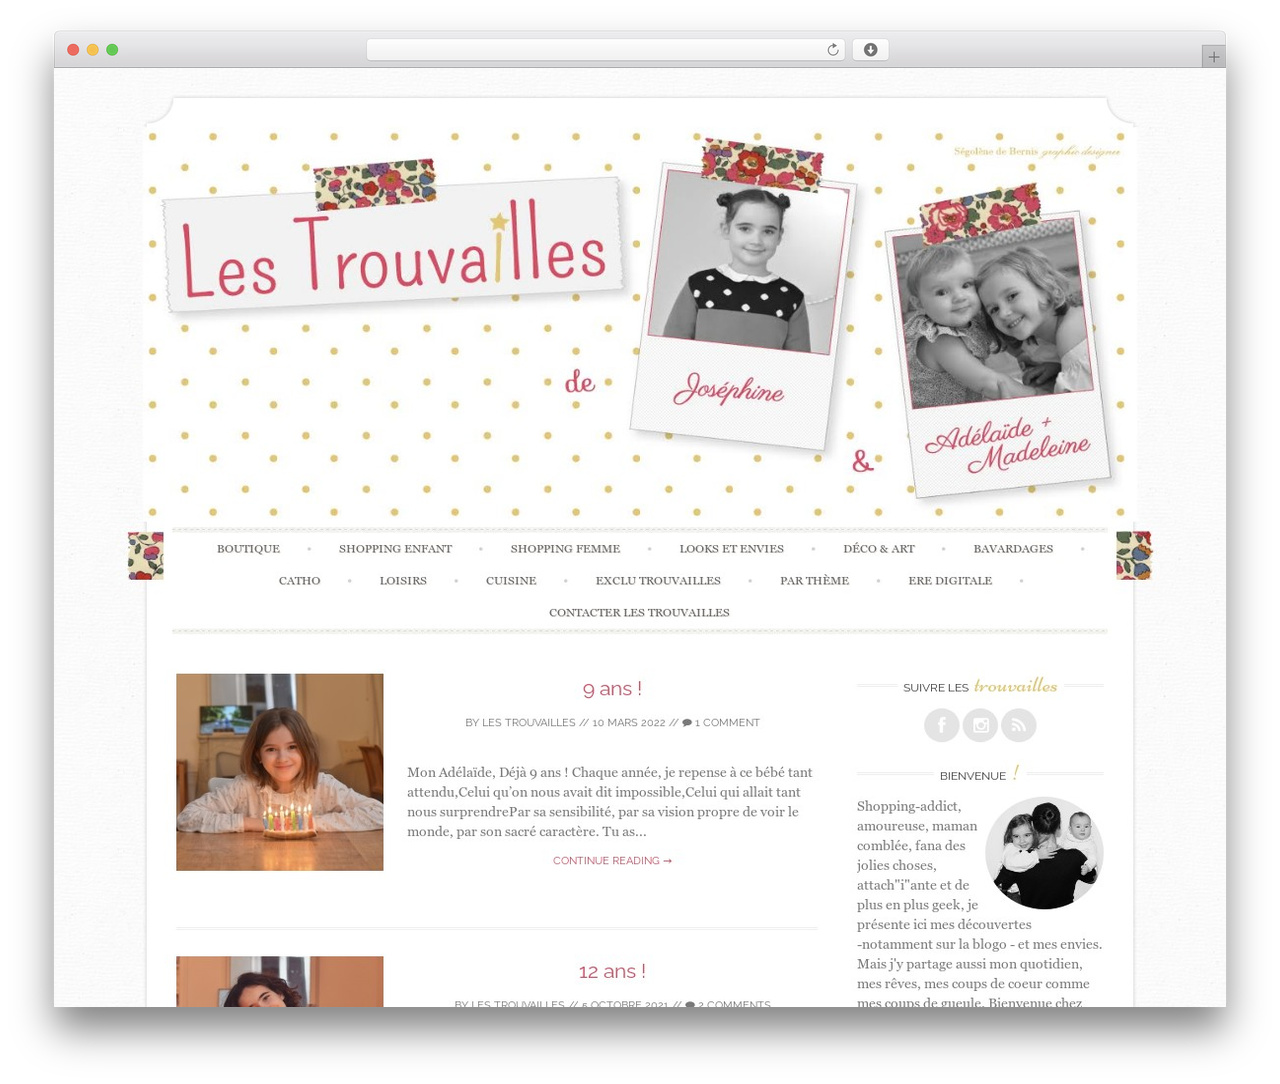 WordPress website template Sugar and Spice - lestrouvaillesdejosephine.fr